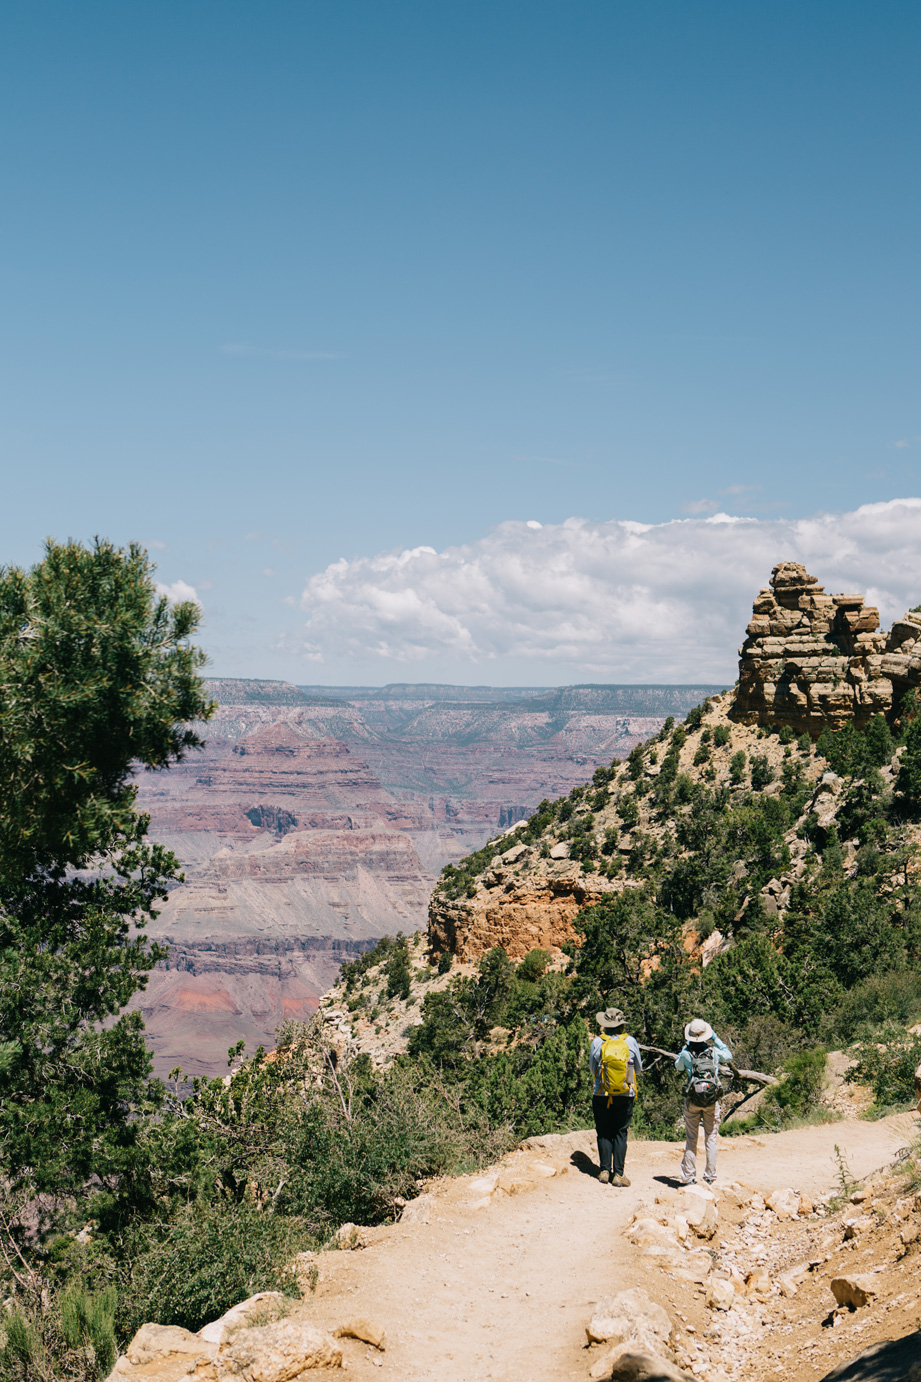 CindyGiovagnoli_GrandCanyon_NationalPark_Arizona_travel_roadtrip-005.jpg